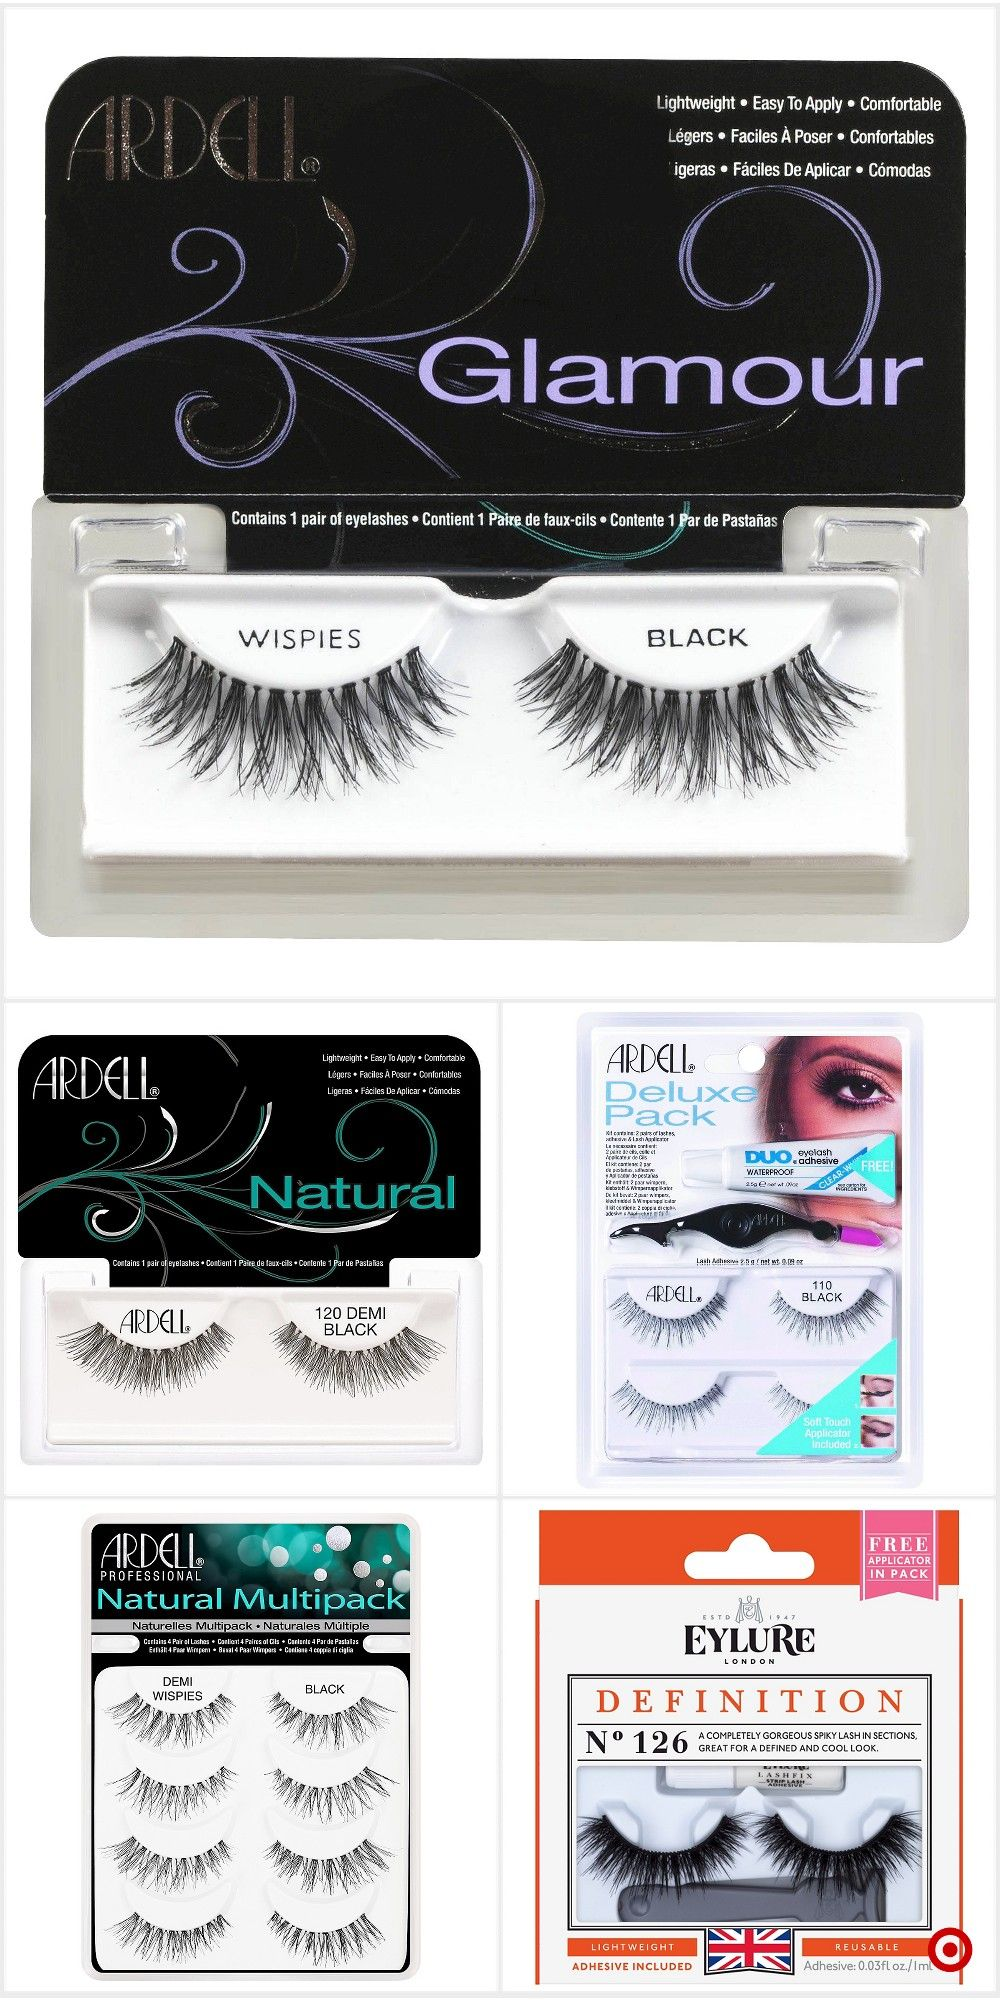 cf486199f10 Shop Target for false eyelashes you will love at great low prices. Free  shipping on orders of $35+ or free same-day pick-up in store.